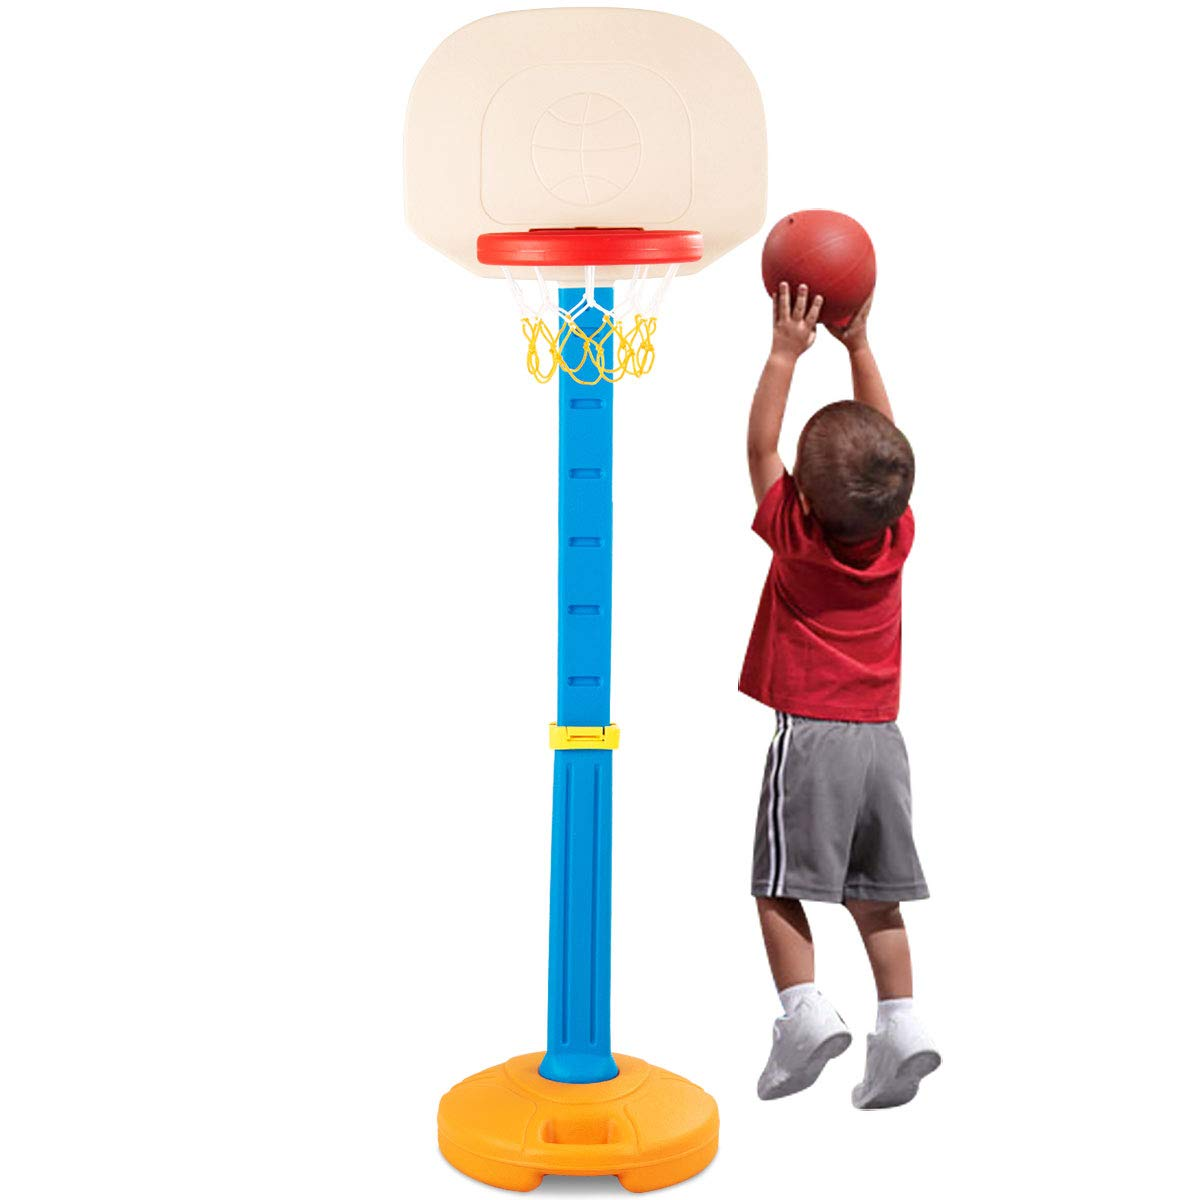 Costzon Kids Basketball Stand, Basketball Hoop Adjustable Height, Kids Play Toy, Portable Design Indoor Outdoor (Height Adjusts from 4 to 5.5 Feet) by Costzon